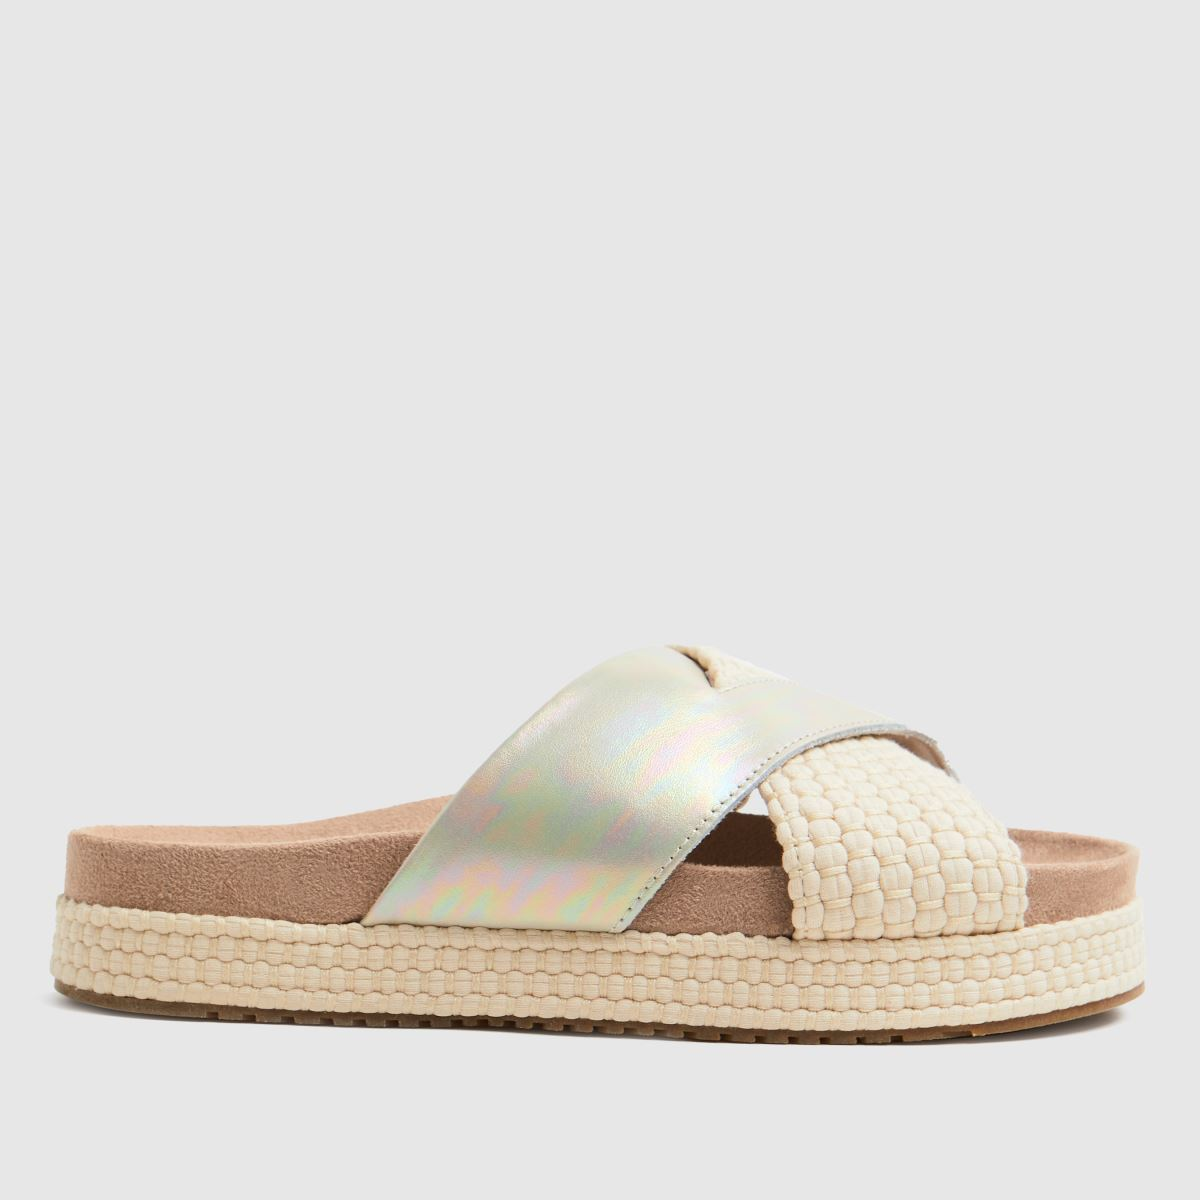 TOMS Silver Paloma Sandals